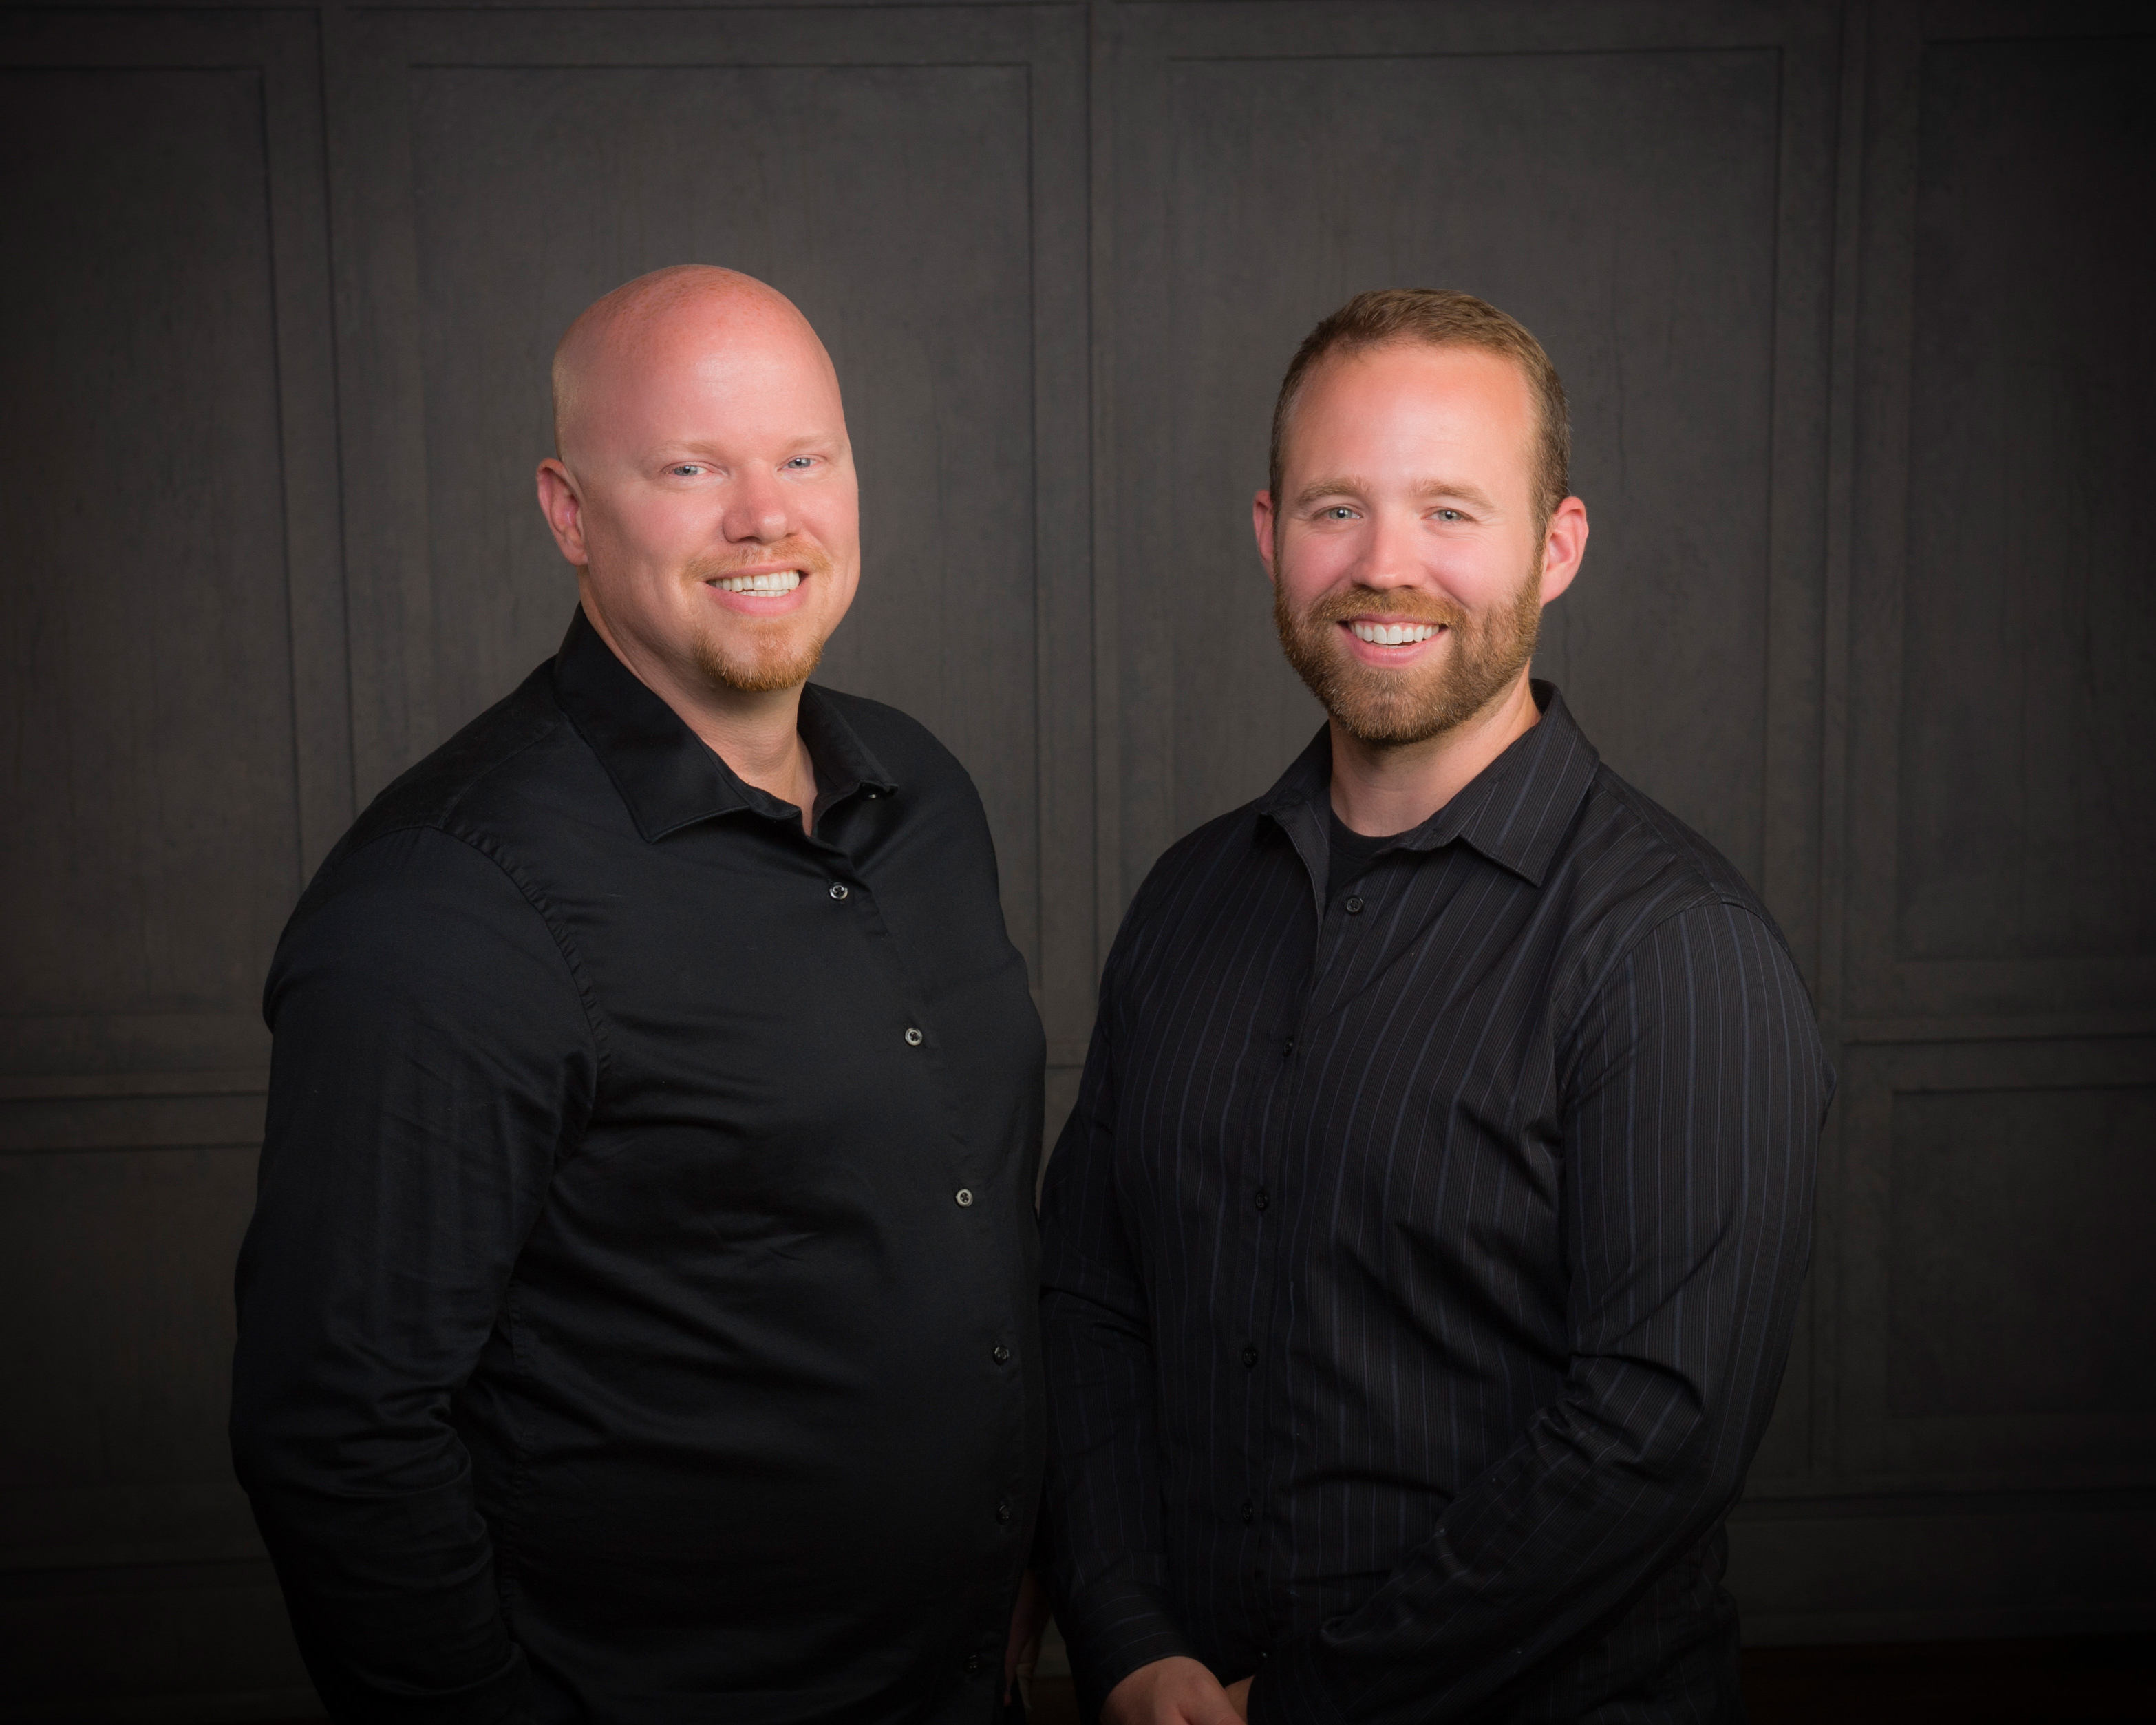 Dr. Sean Goolsby and Dr. Kai Ahlman